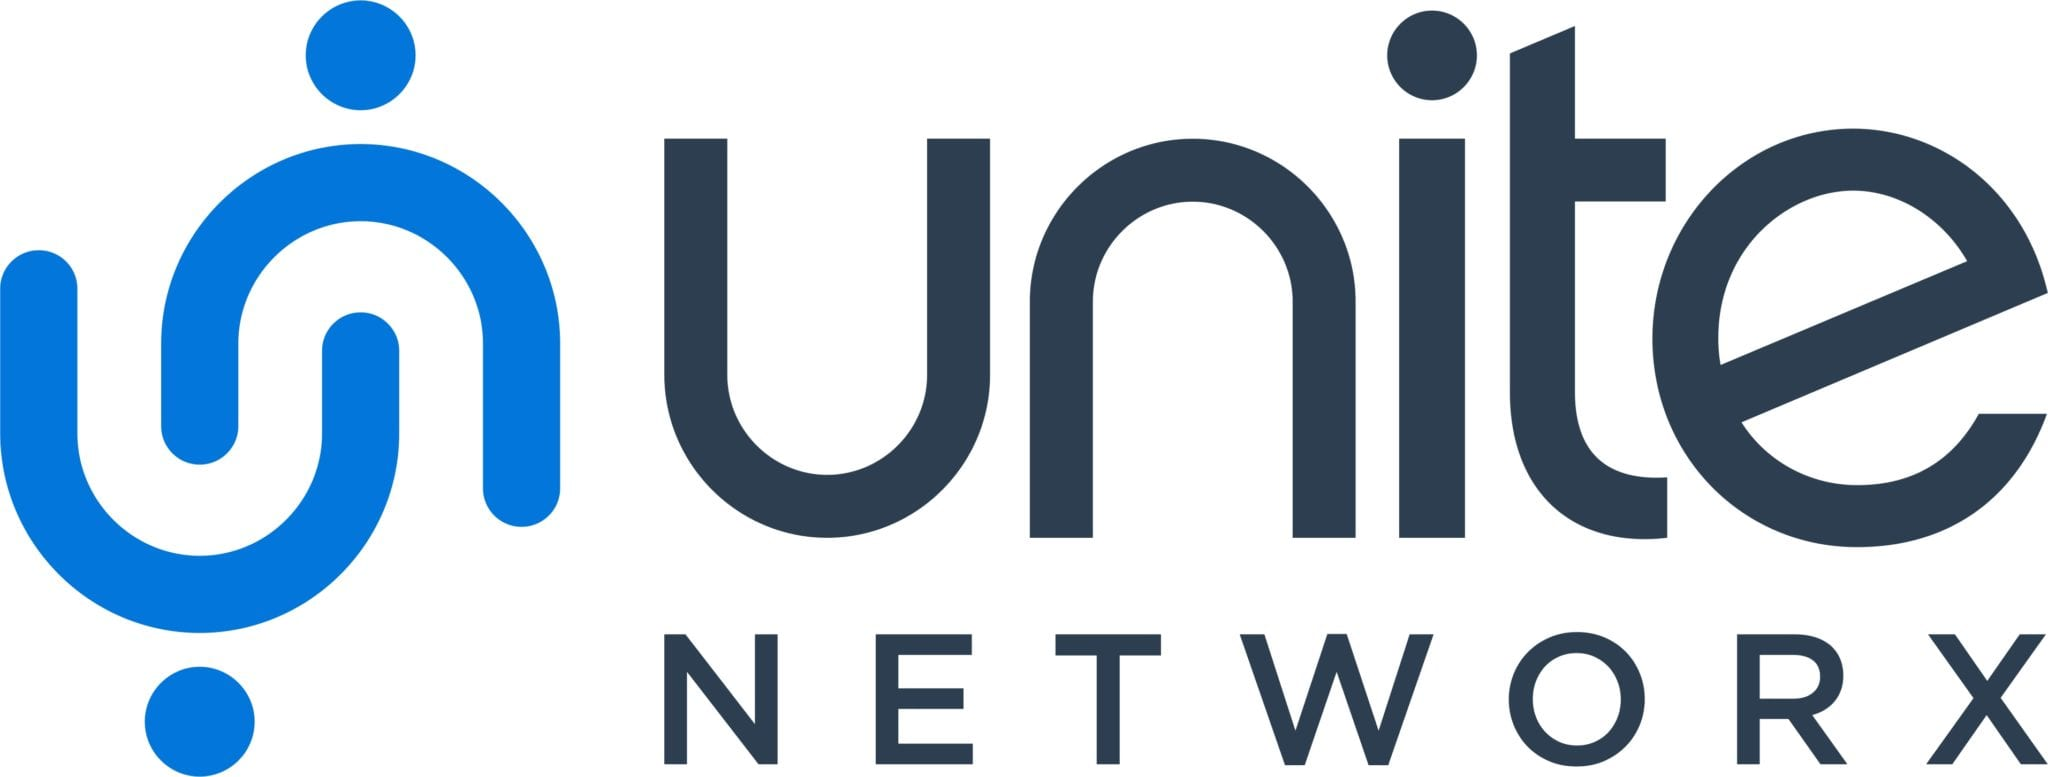 Unite Networx logo in colour